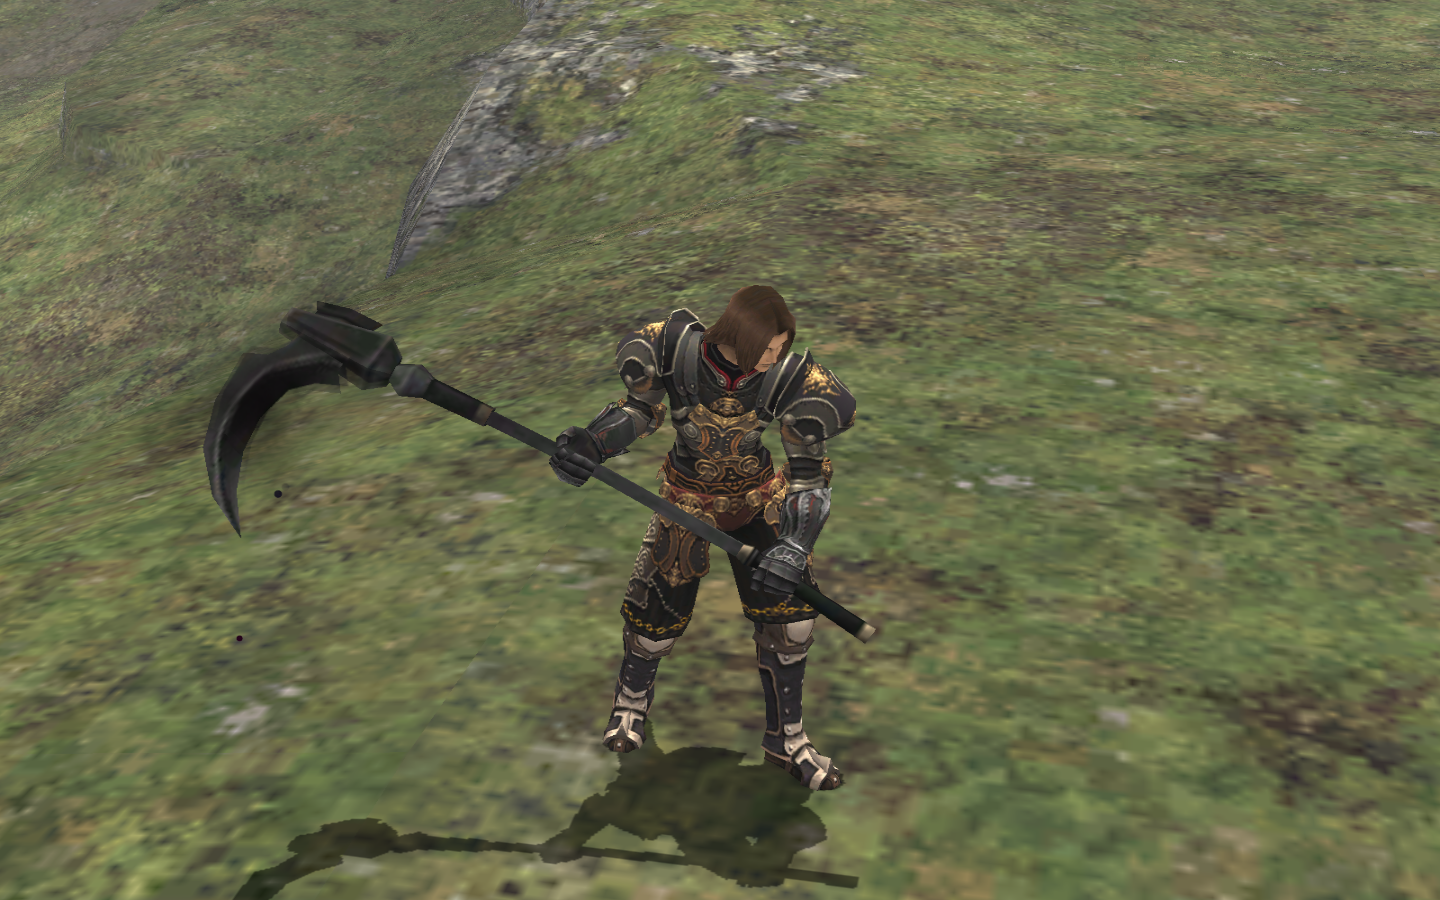 vlorsutes ffxi just satisfy ones beastman original costume obsession gonna hecteyes bought although bitch that players yeah maybe kicks randomly burrows findings glitched luck cheap enough meeble theyre said like